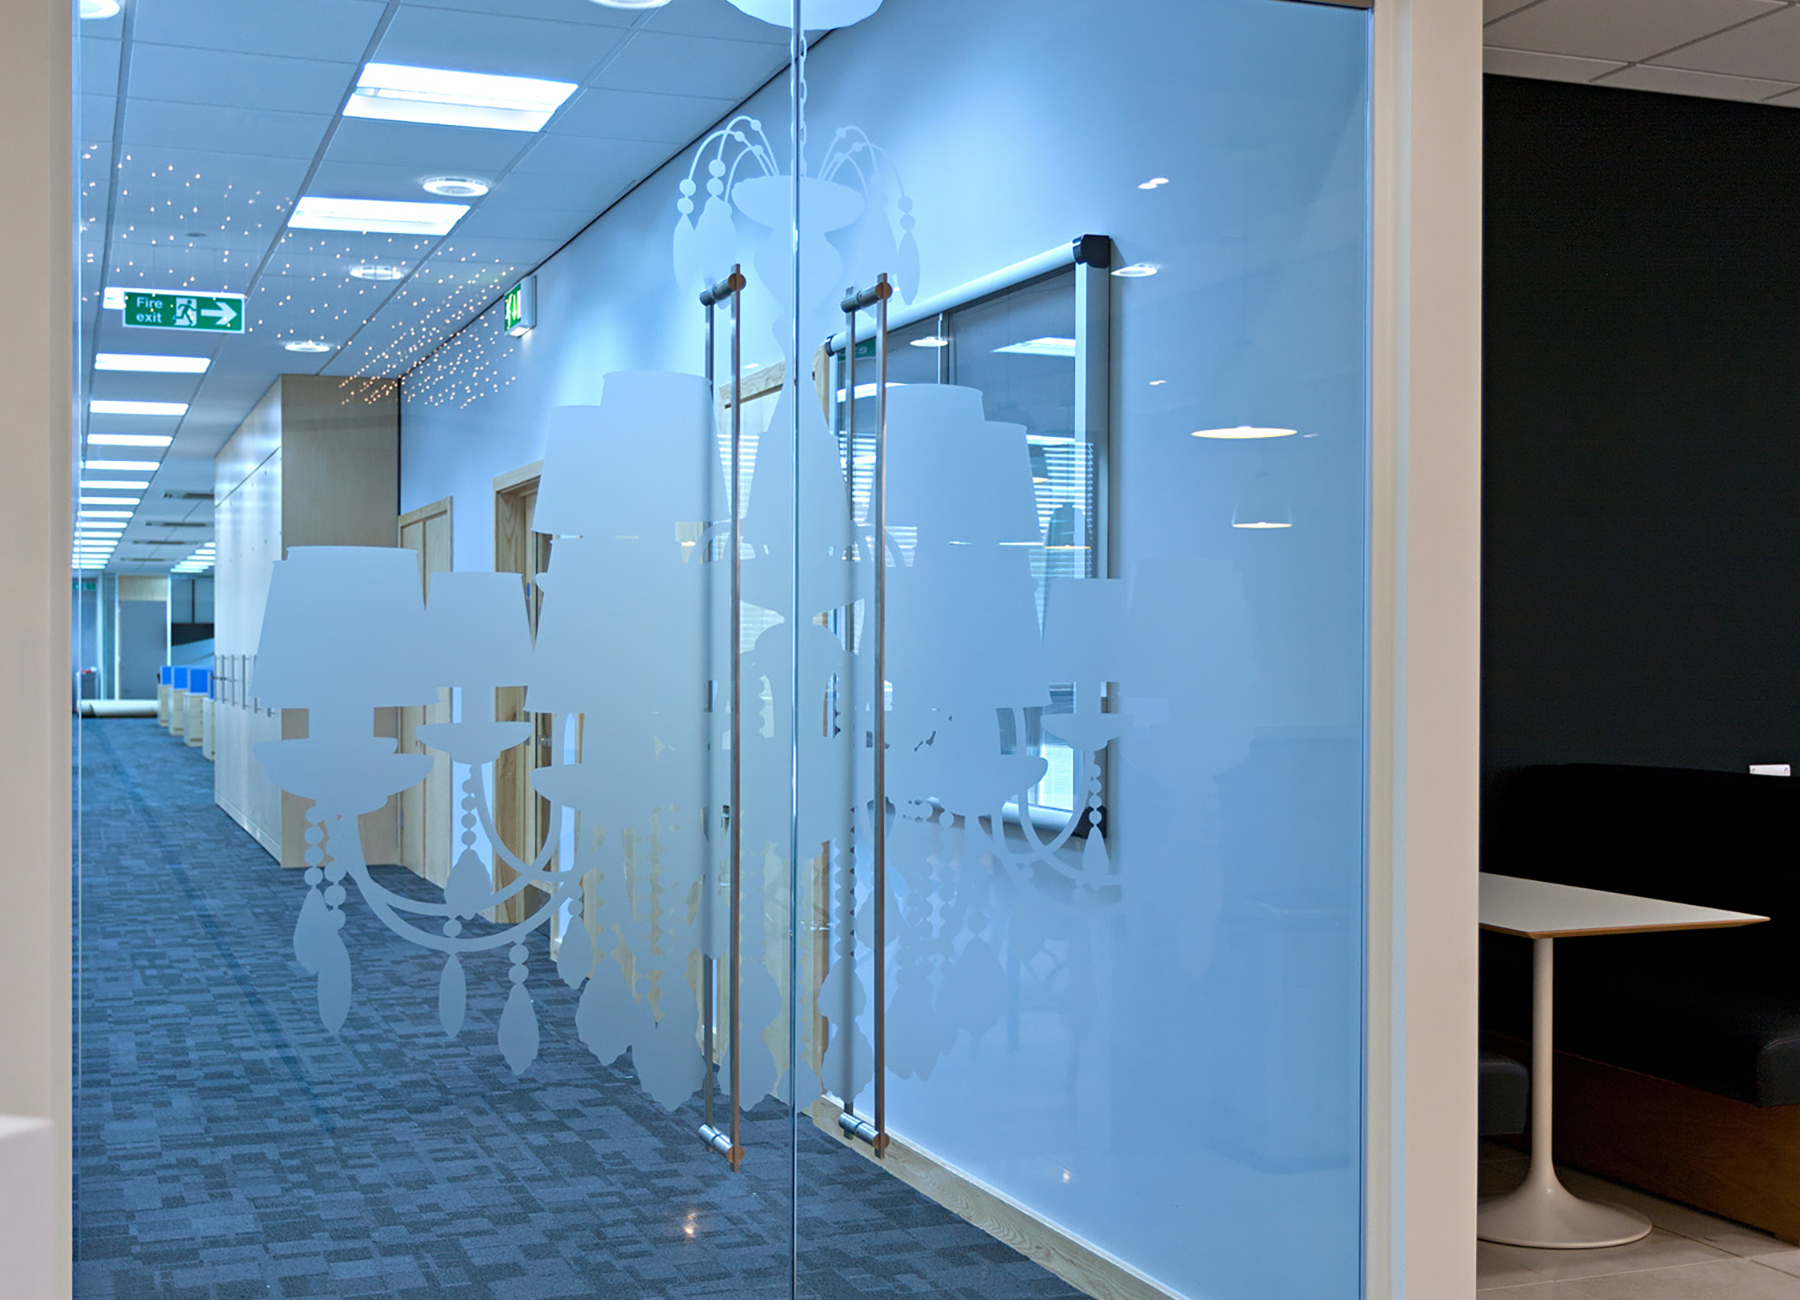 Glazed partition doors with manifestation on them